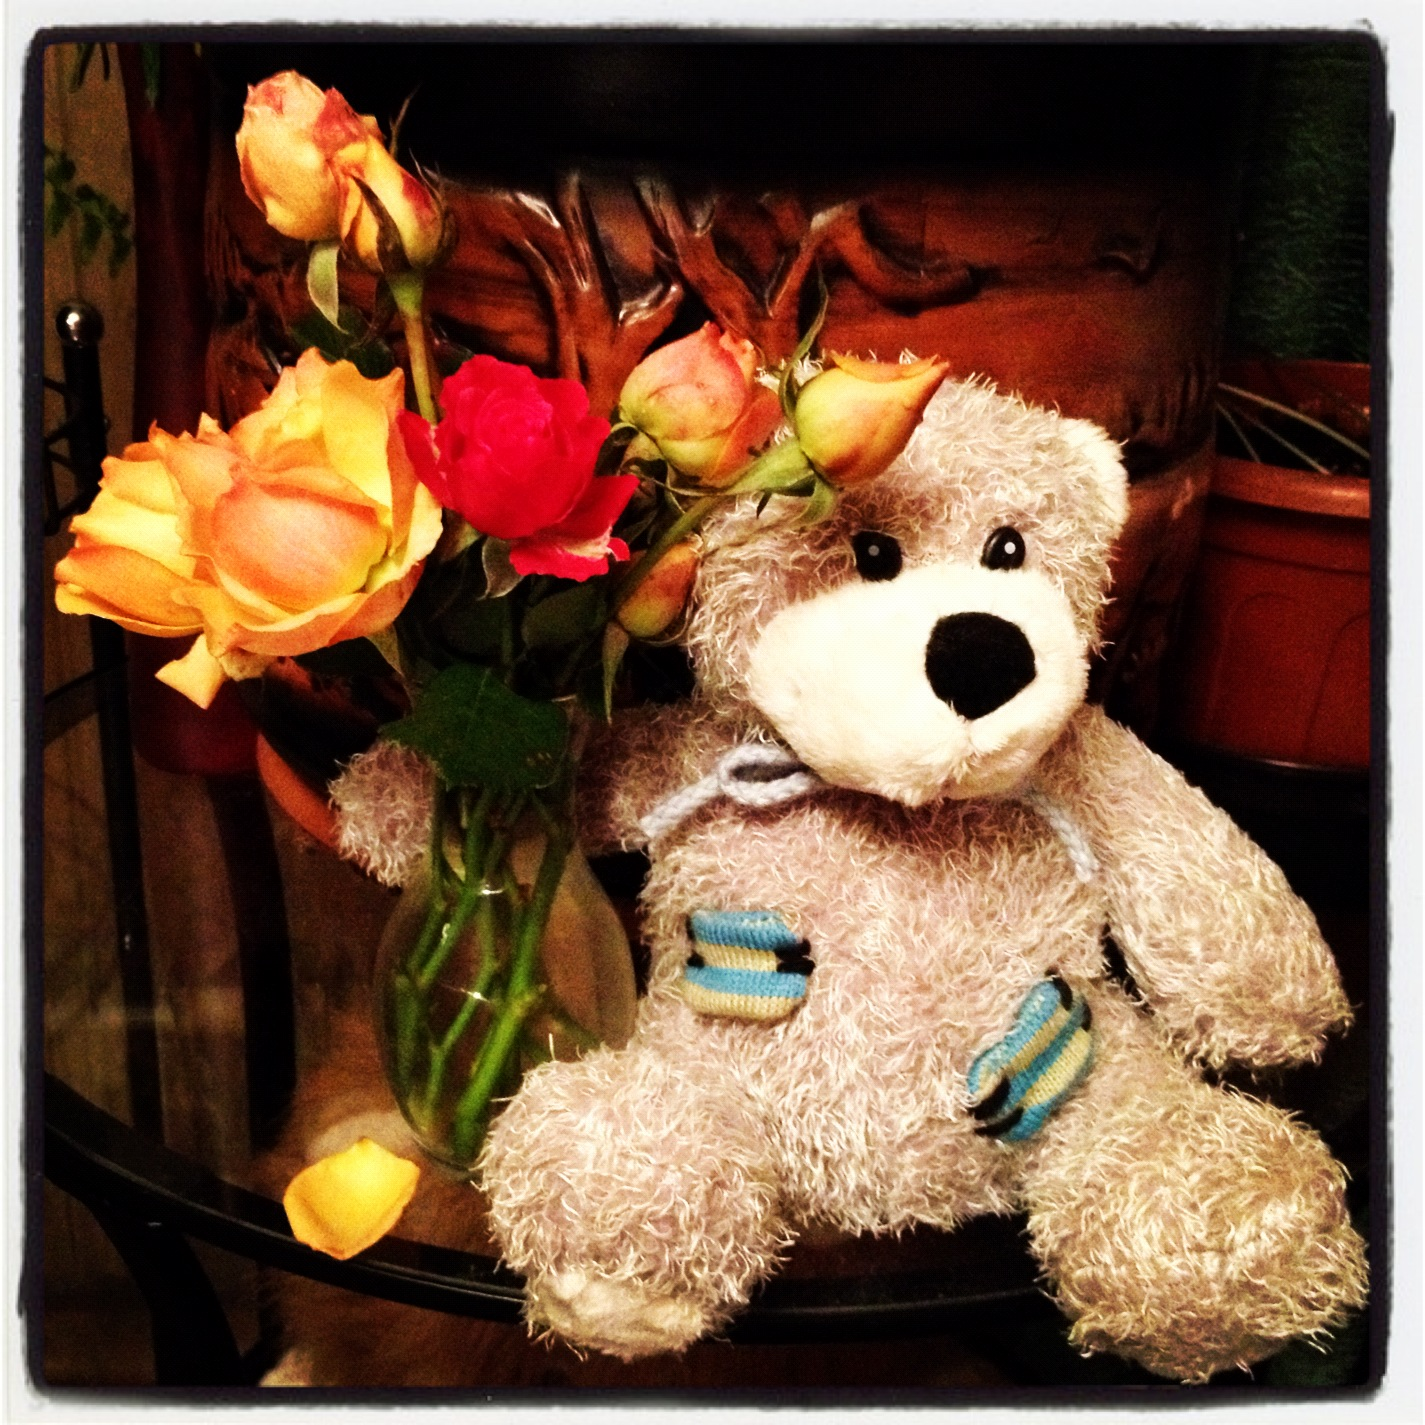 Cute Teddy Bear Pictures With Roses Roses And Teddy Bear